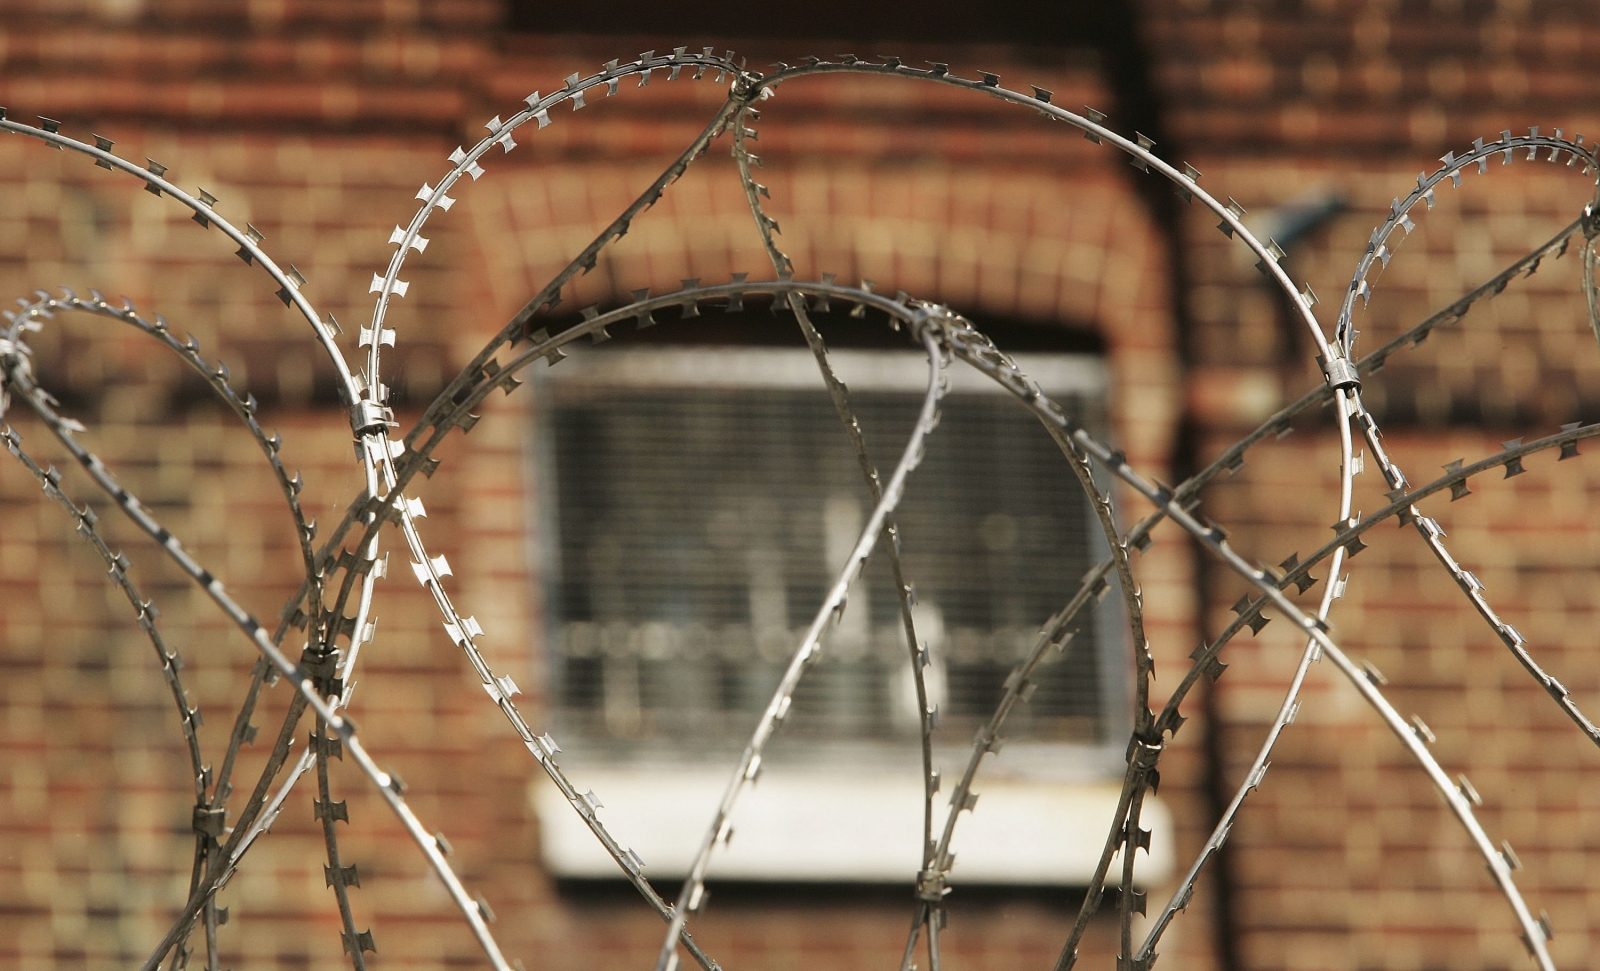 HMP Elmley has rising levels of violence, drugs and suicide, found snap inspection